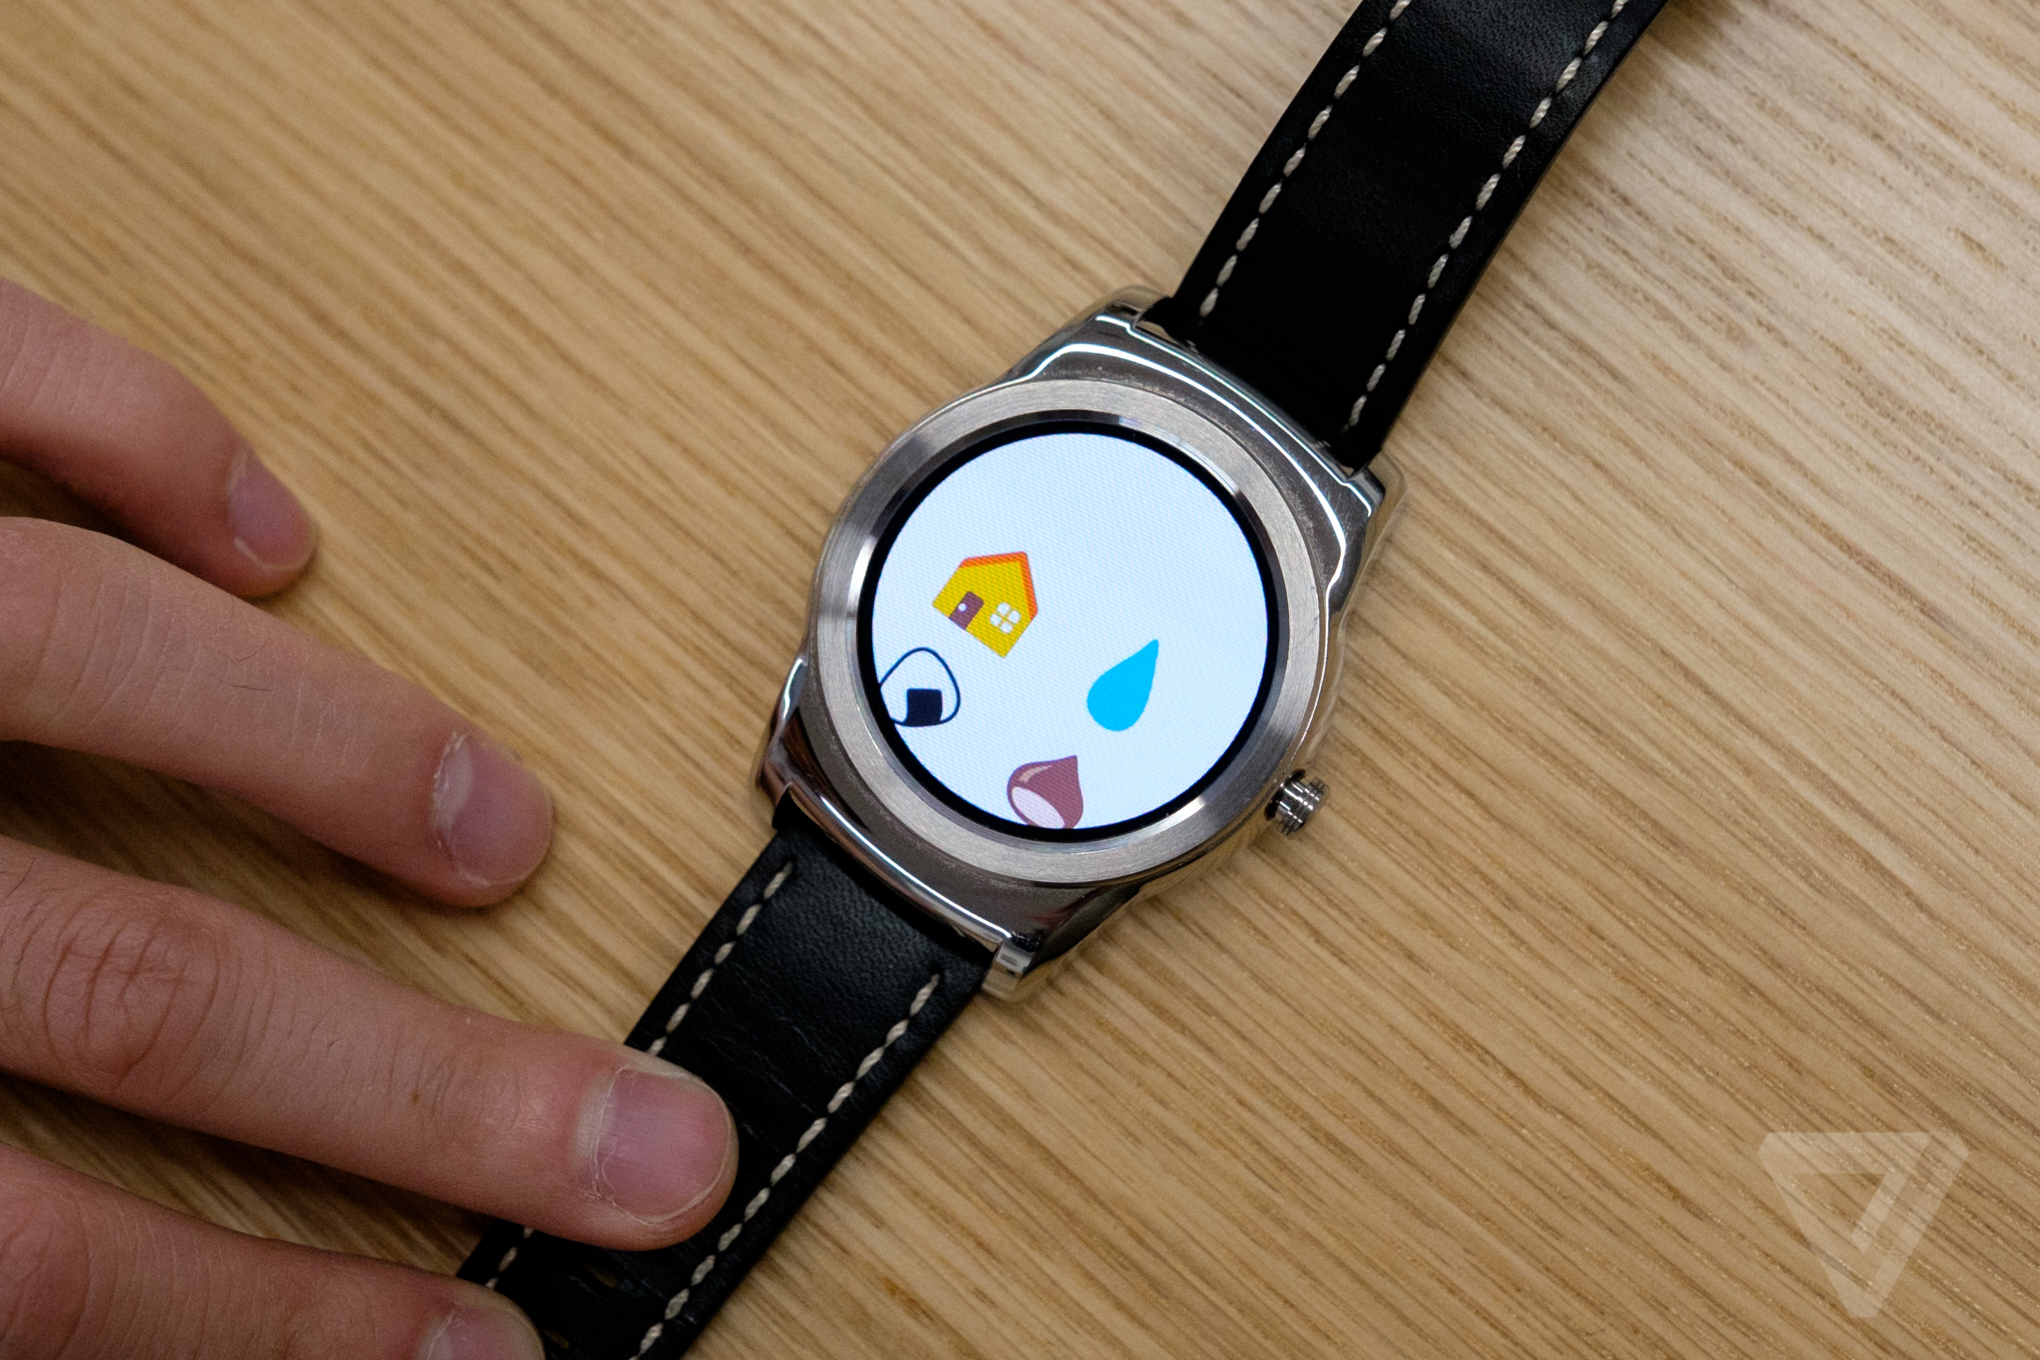 Drawn watch hand watch Ever included out aim Wear's